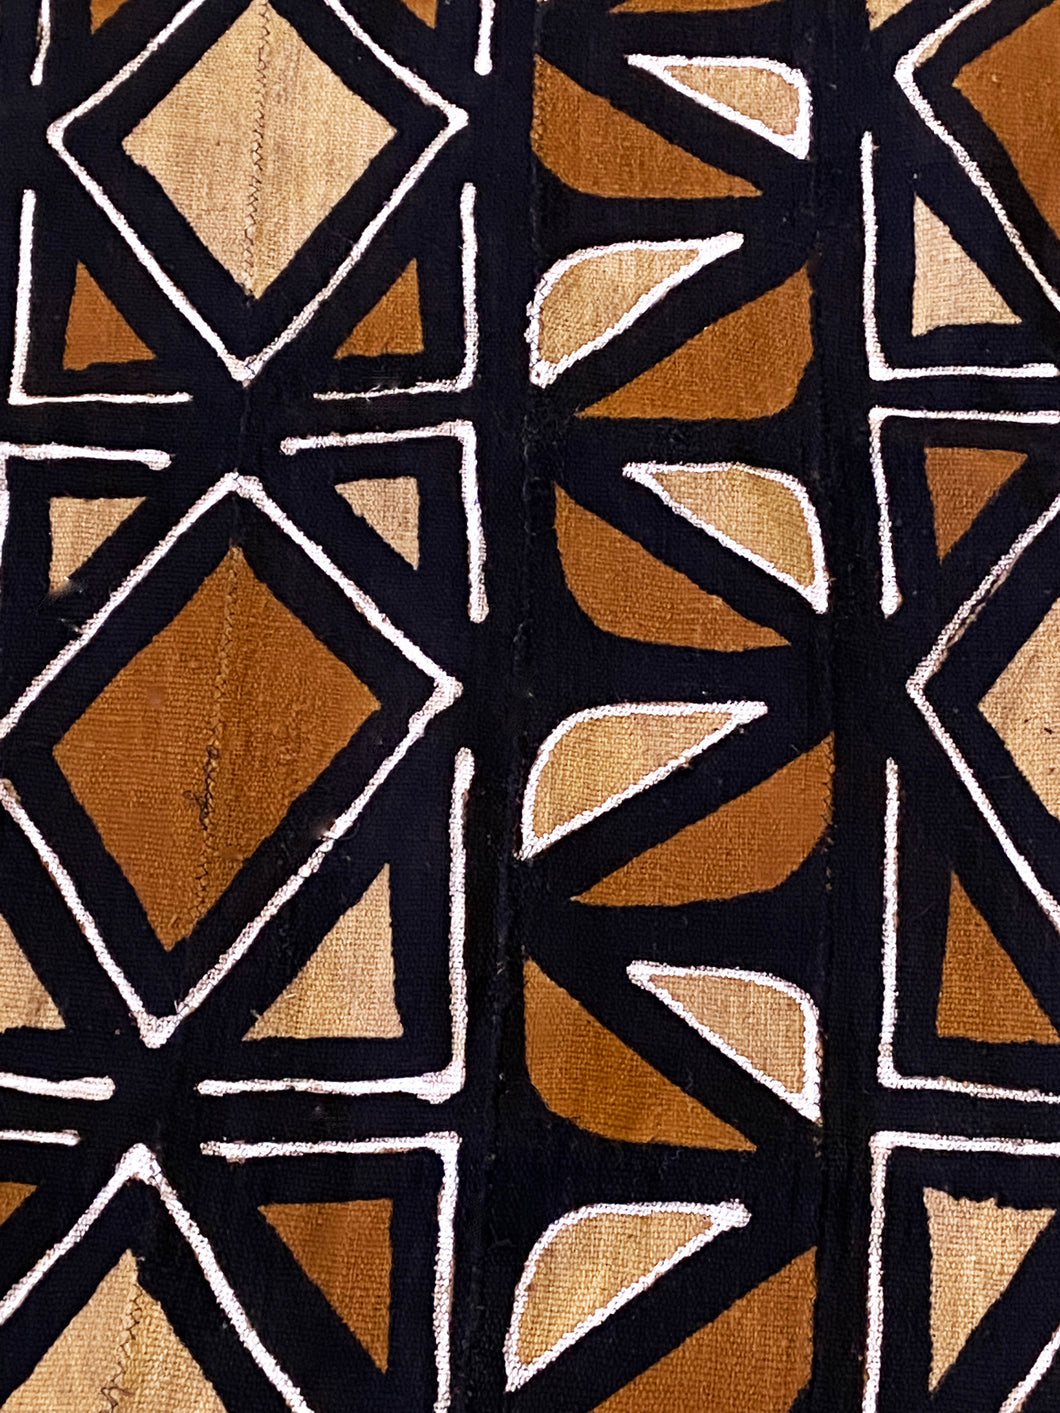 Brown/Mustard/Black/White Mud Cloth Mali 68